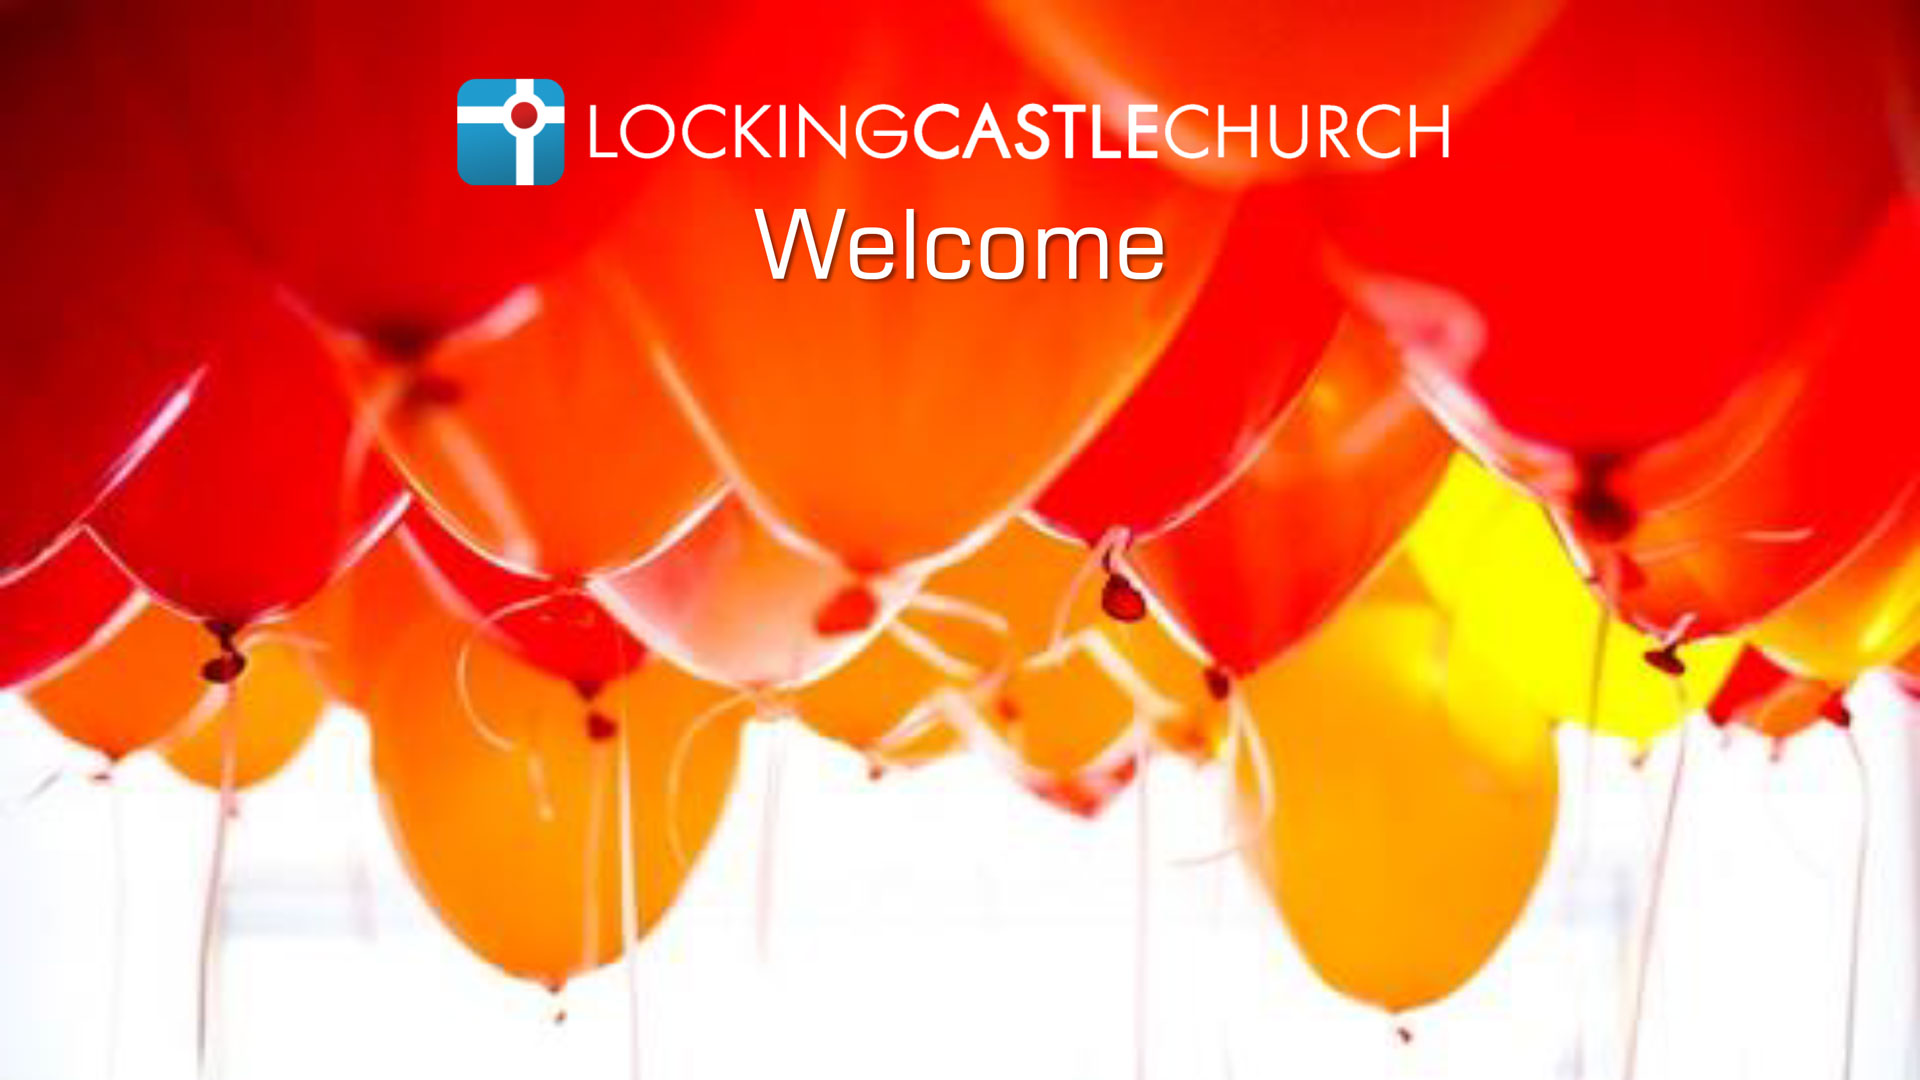 Locking Castle Church, Weston-super-Mare